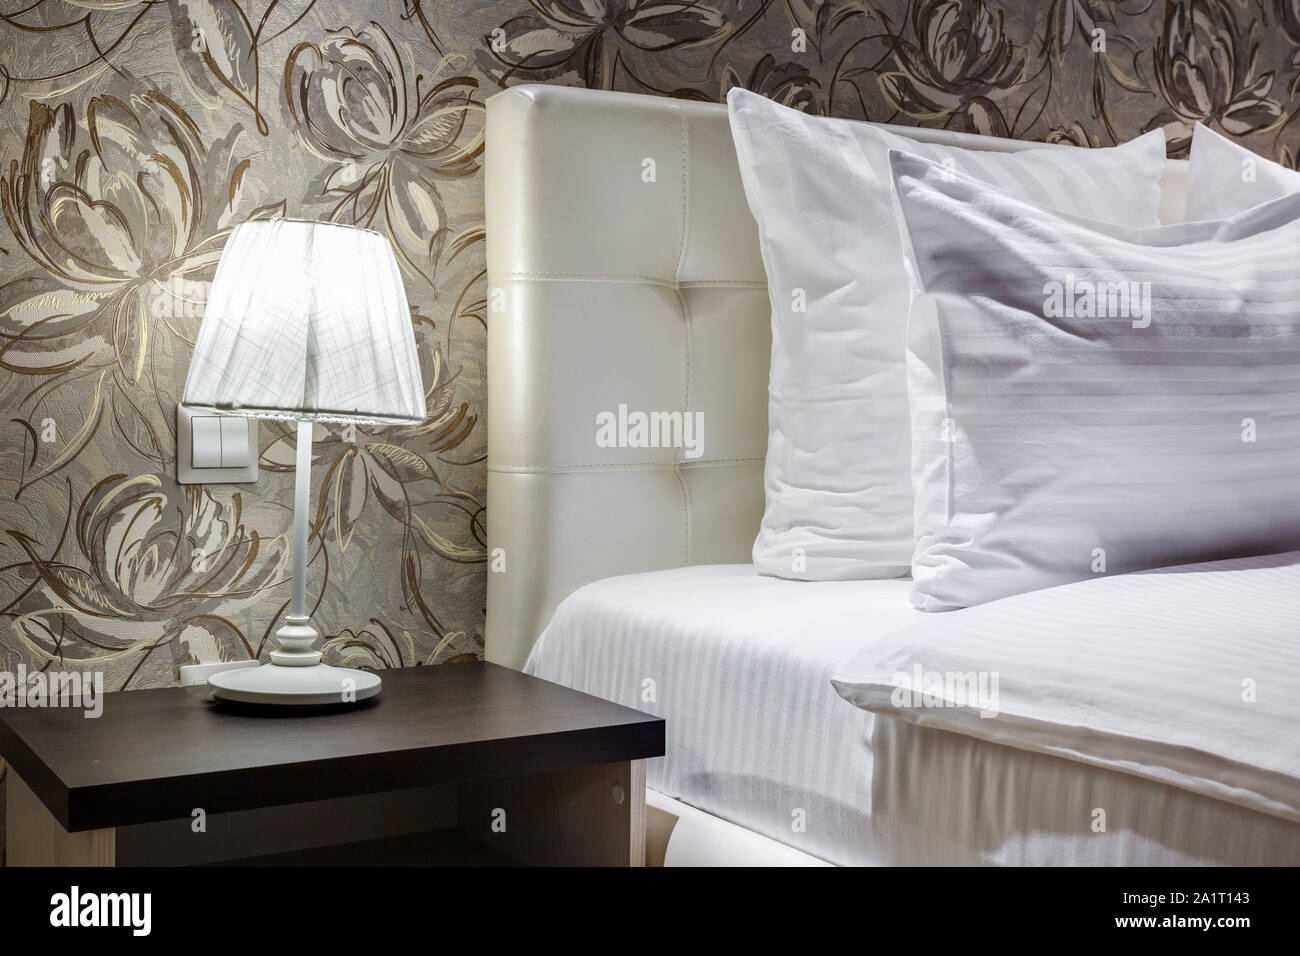 Night Lamp With Lampshade On Bedside Tables Near Double Bed With Pillows In Interior Of The Modern Bedroom Stock Photo Alamy